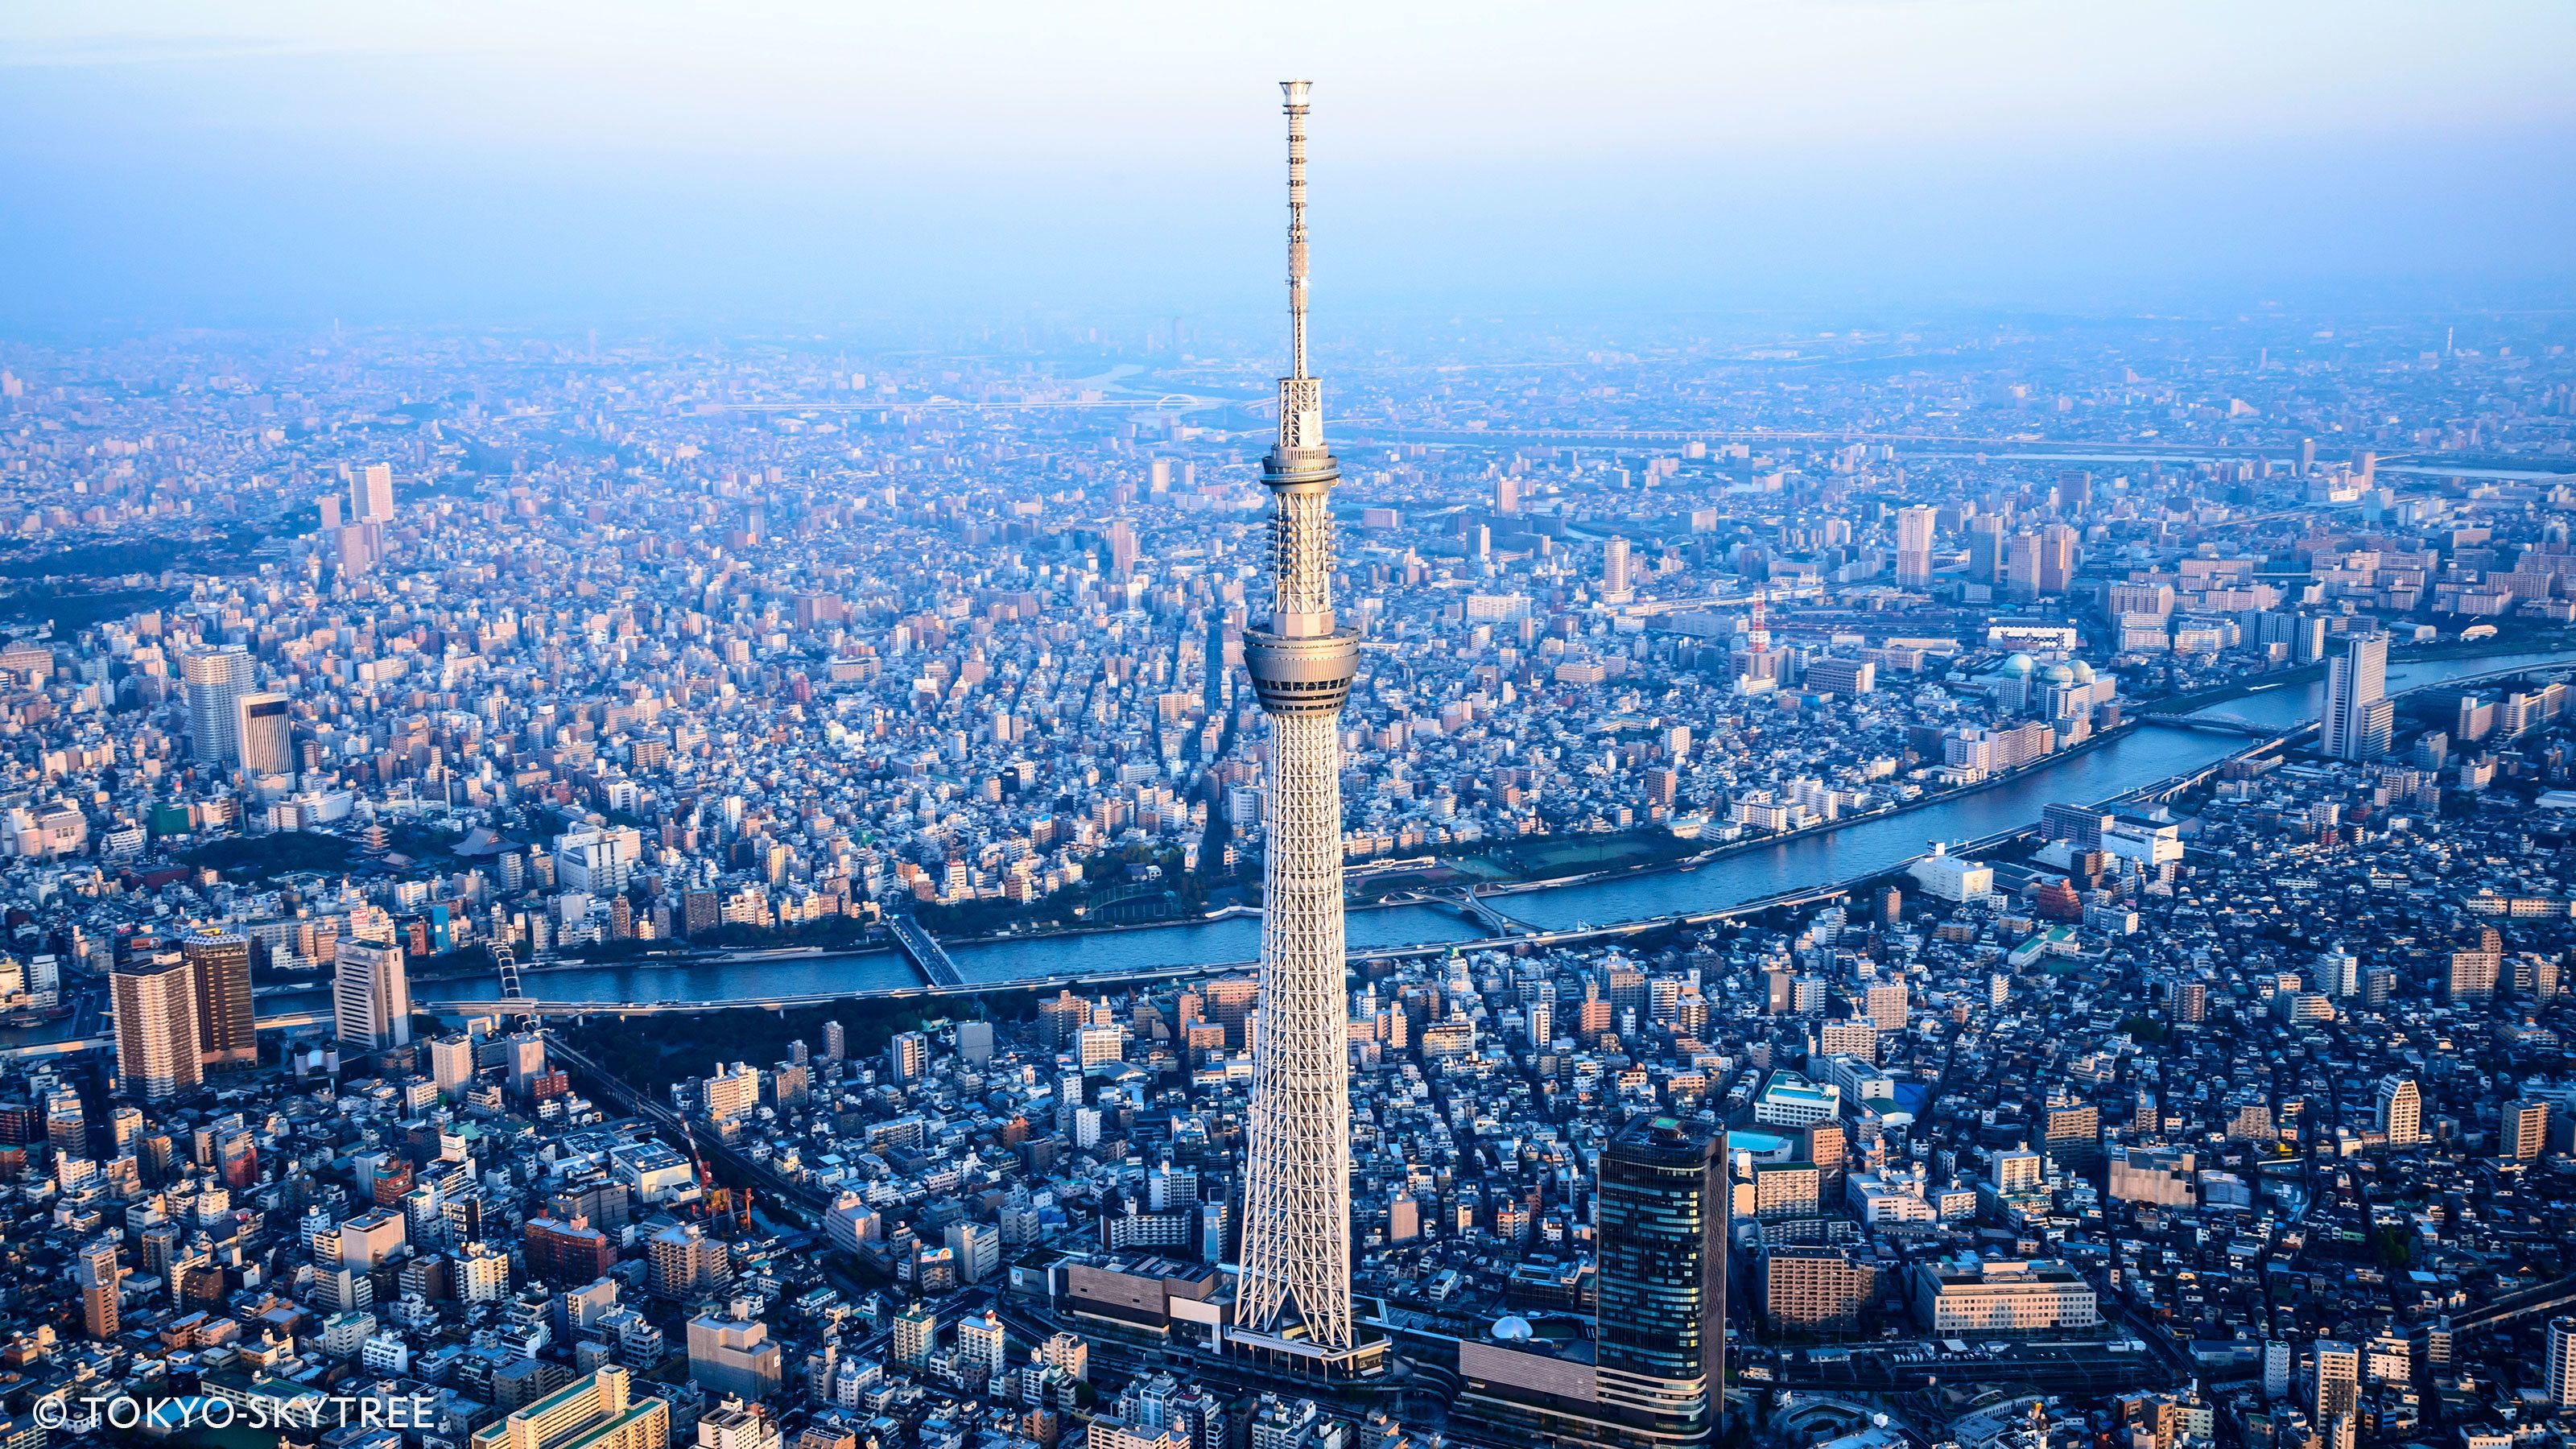 TOKYO SKYTREE® Ticket (Valid for 7 days)